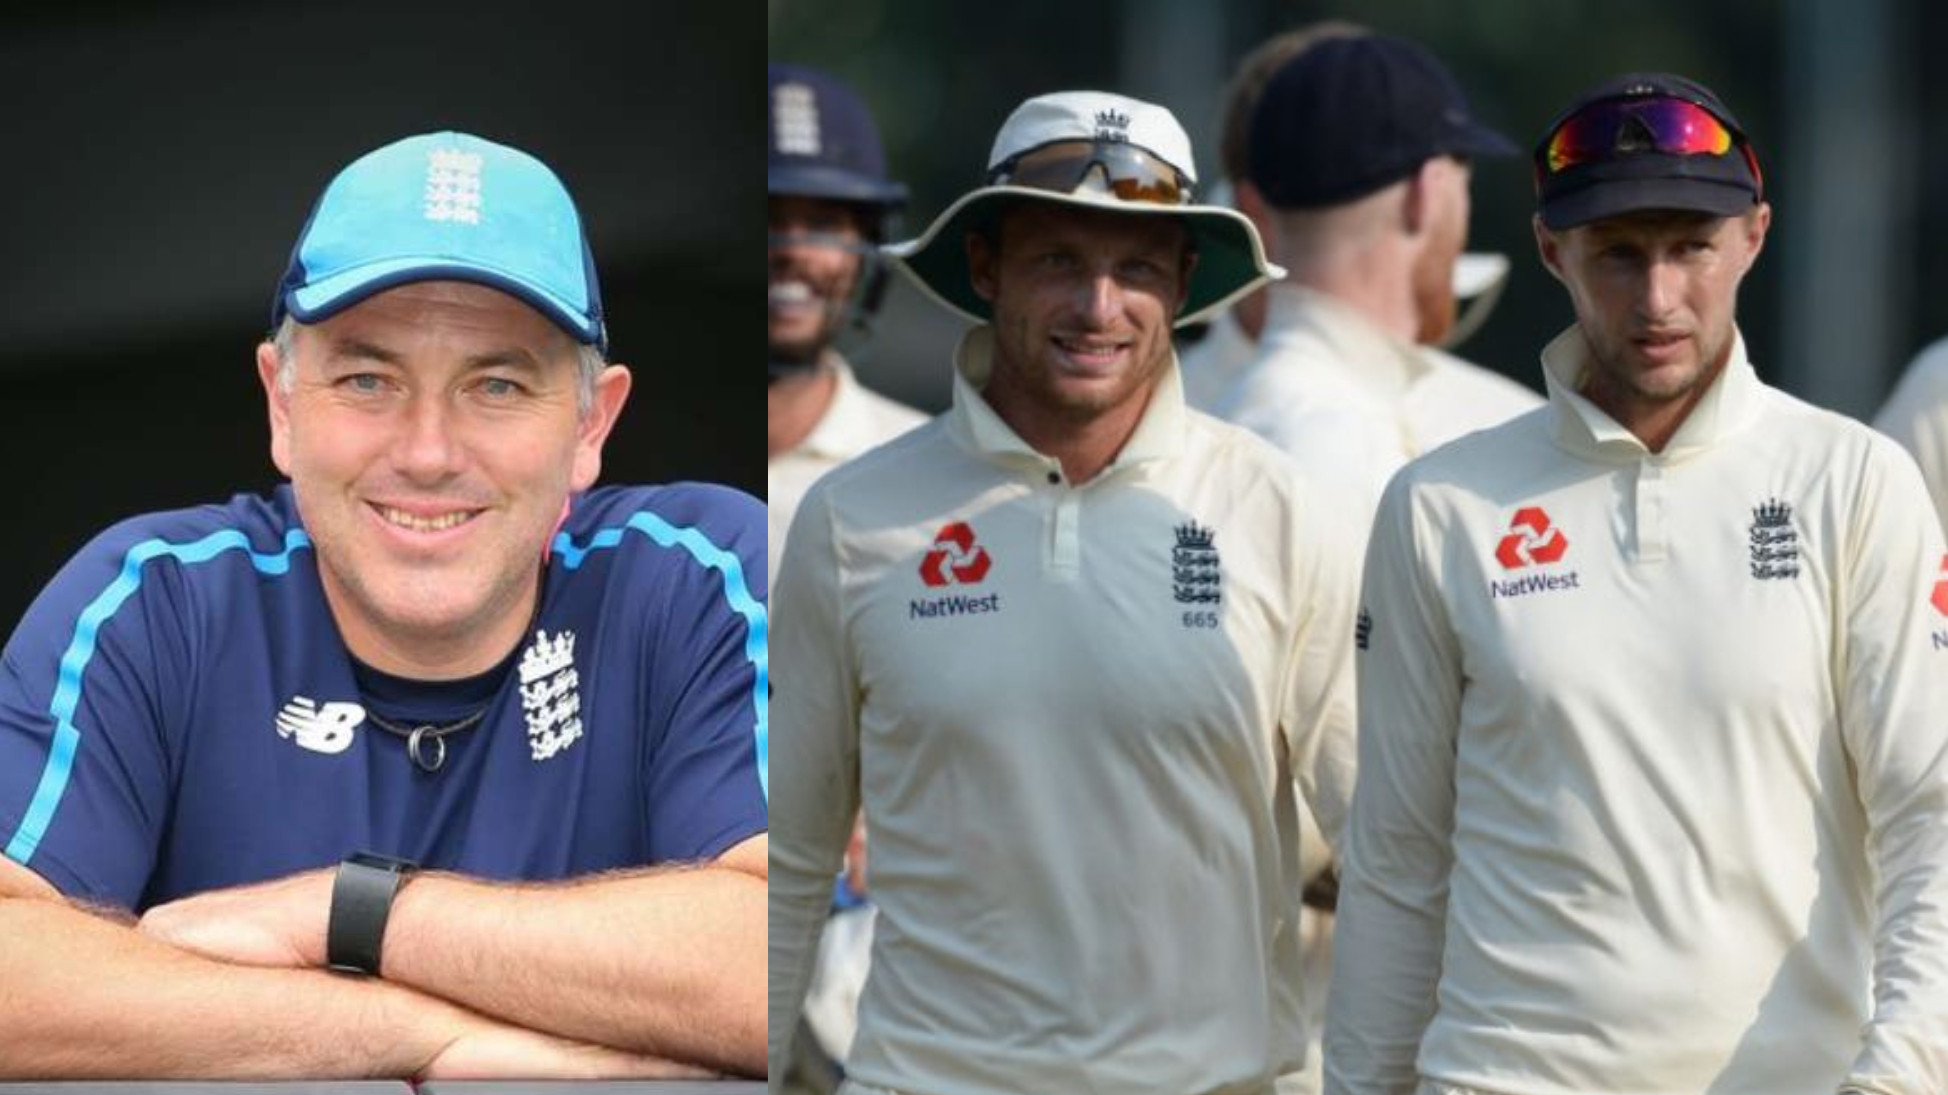 Chris Silverwood says England team will fight India with zeal at home after recent performances